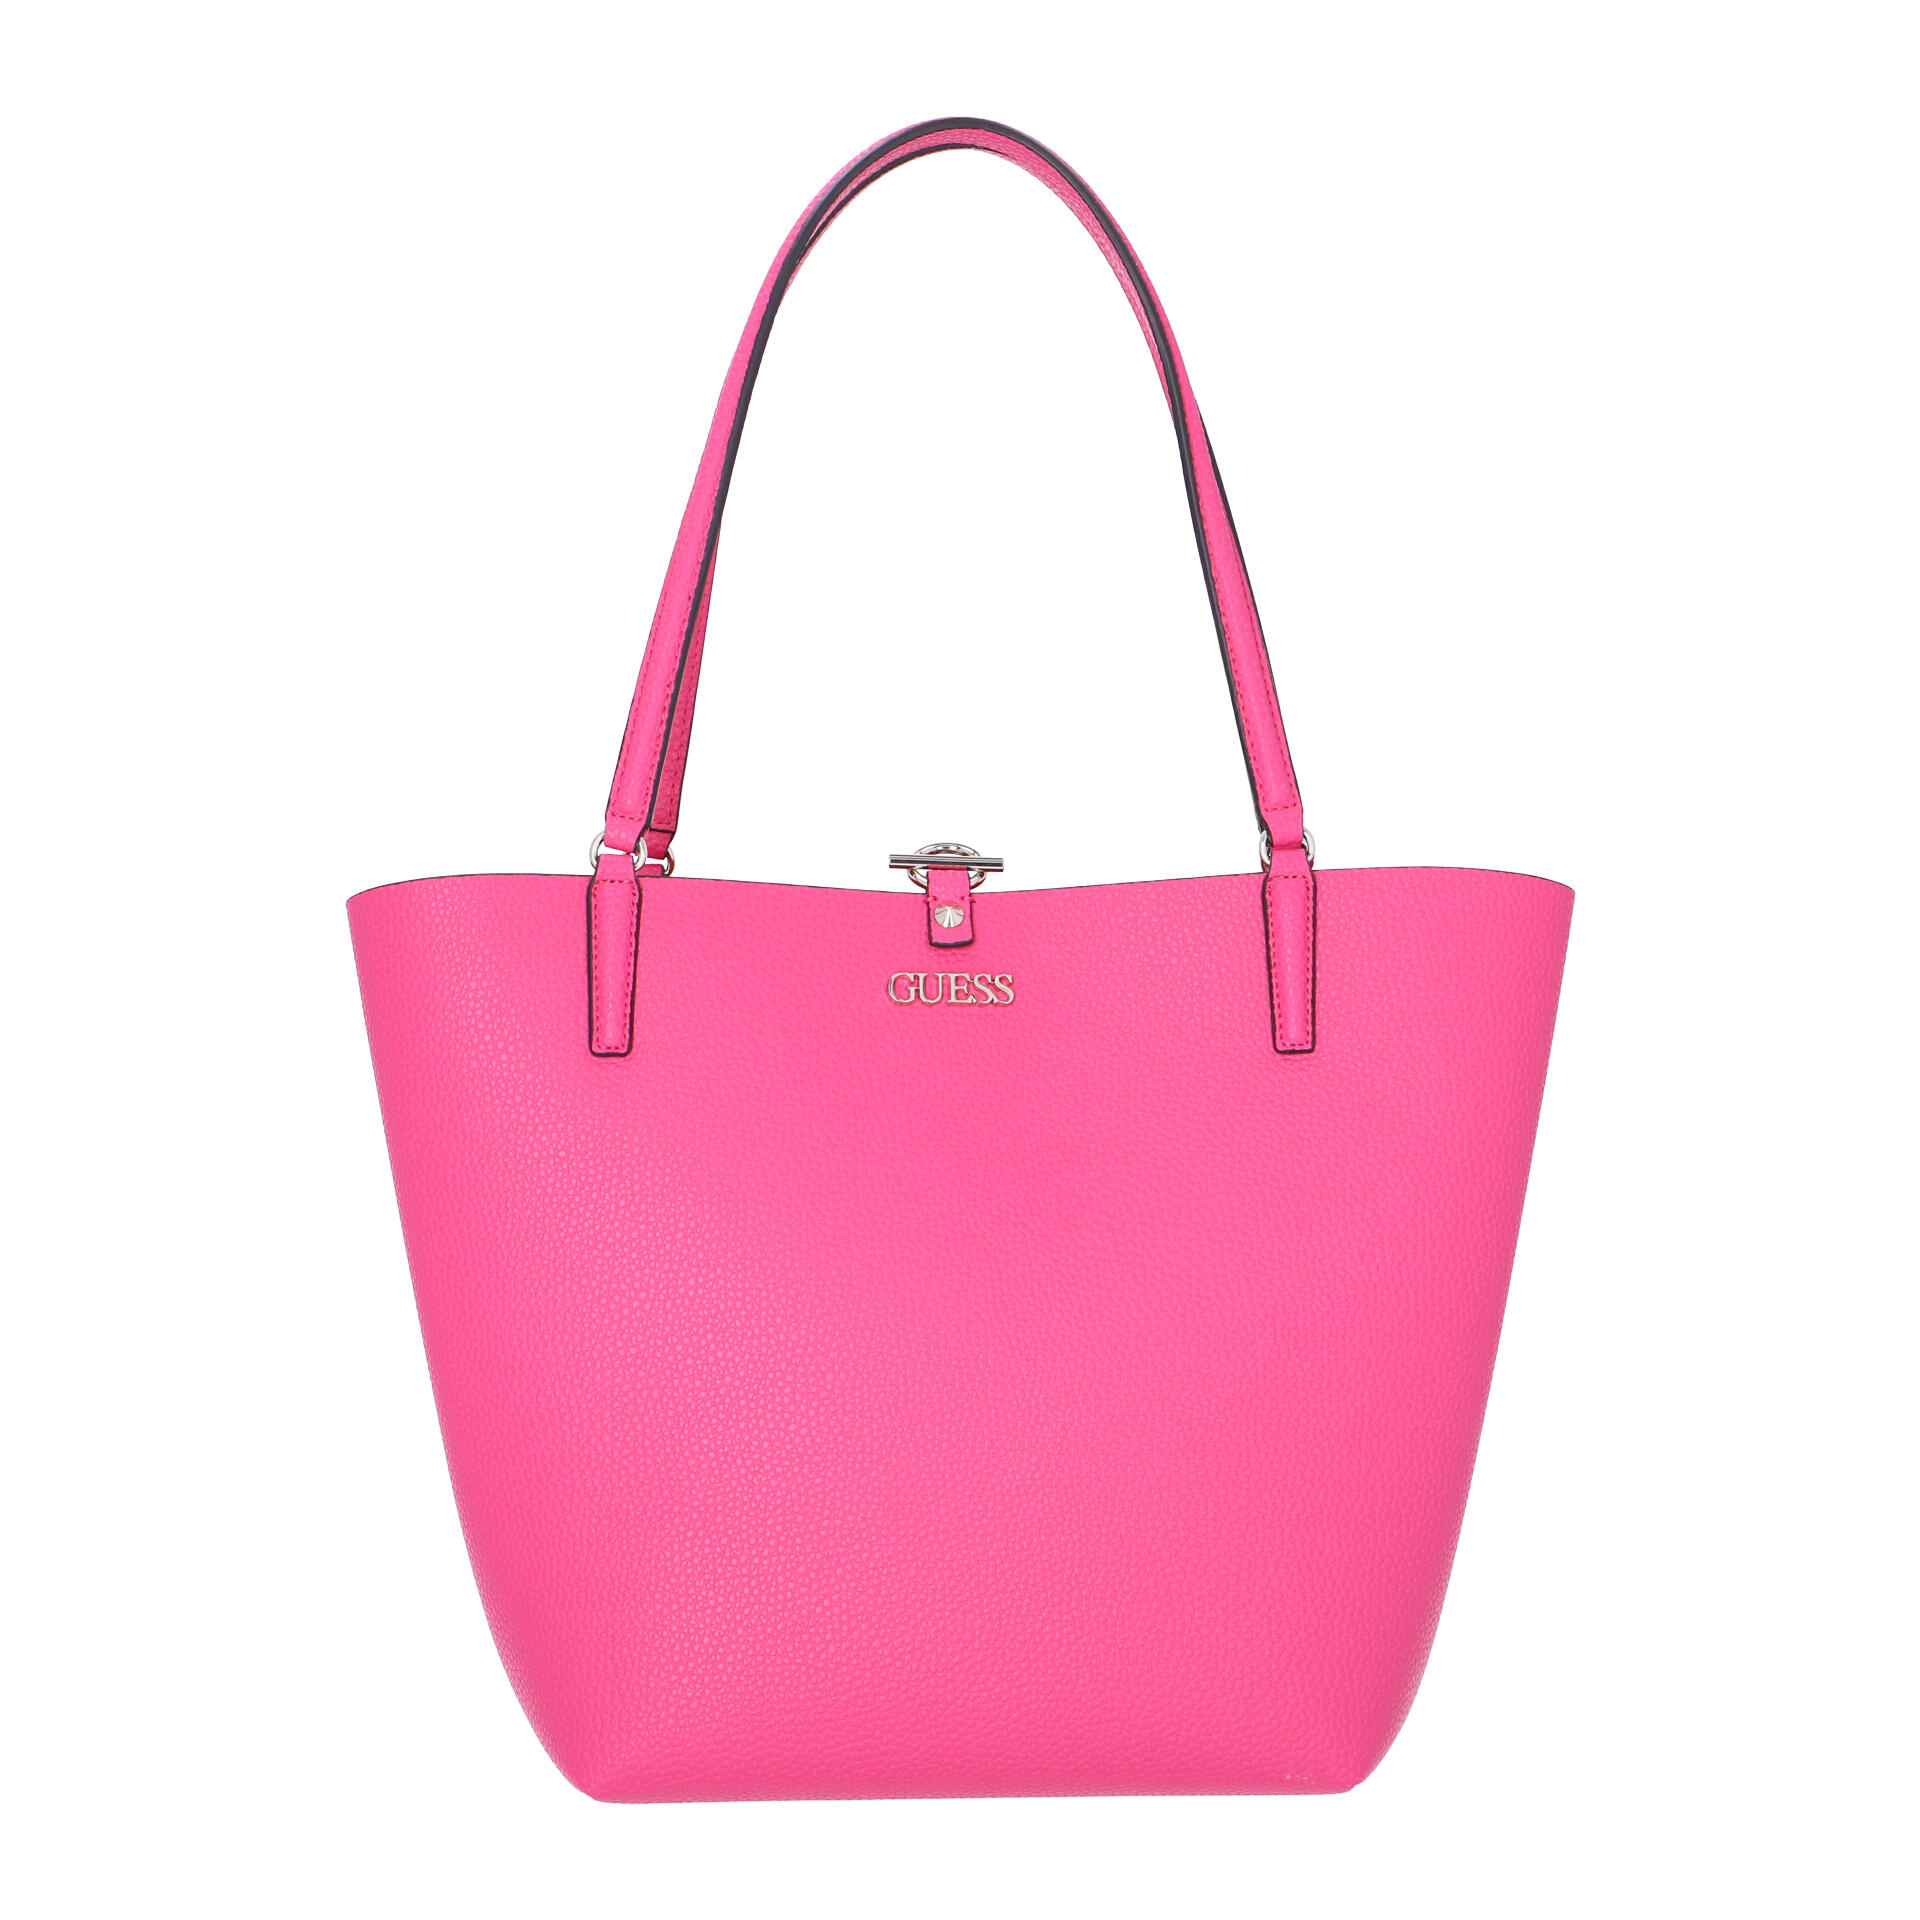 Guess Alby Wende-Shopper mit herausnehmbarer Clutch hibiscus coral